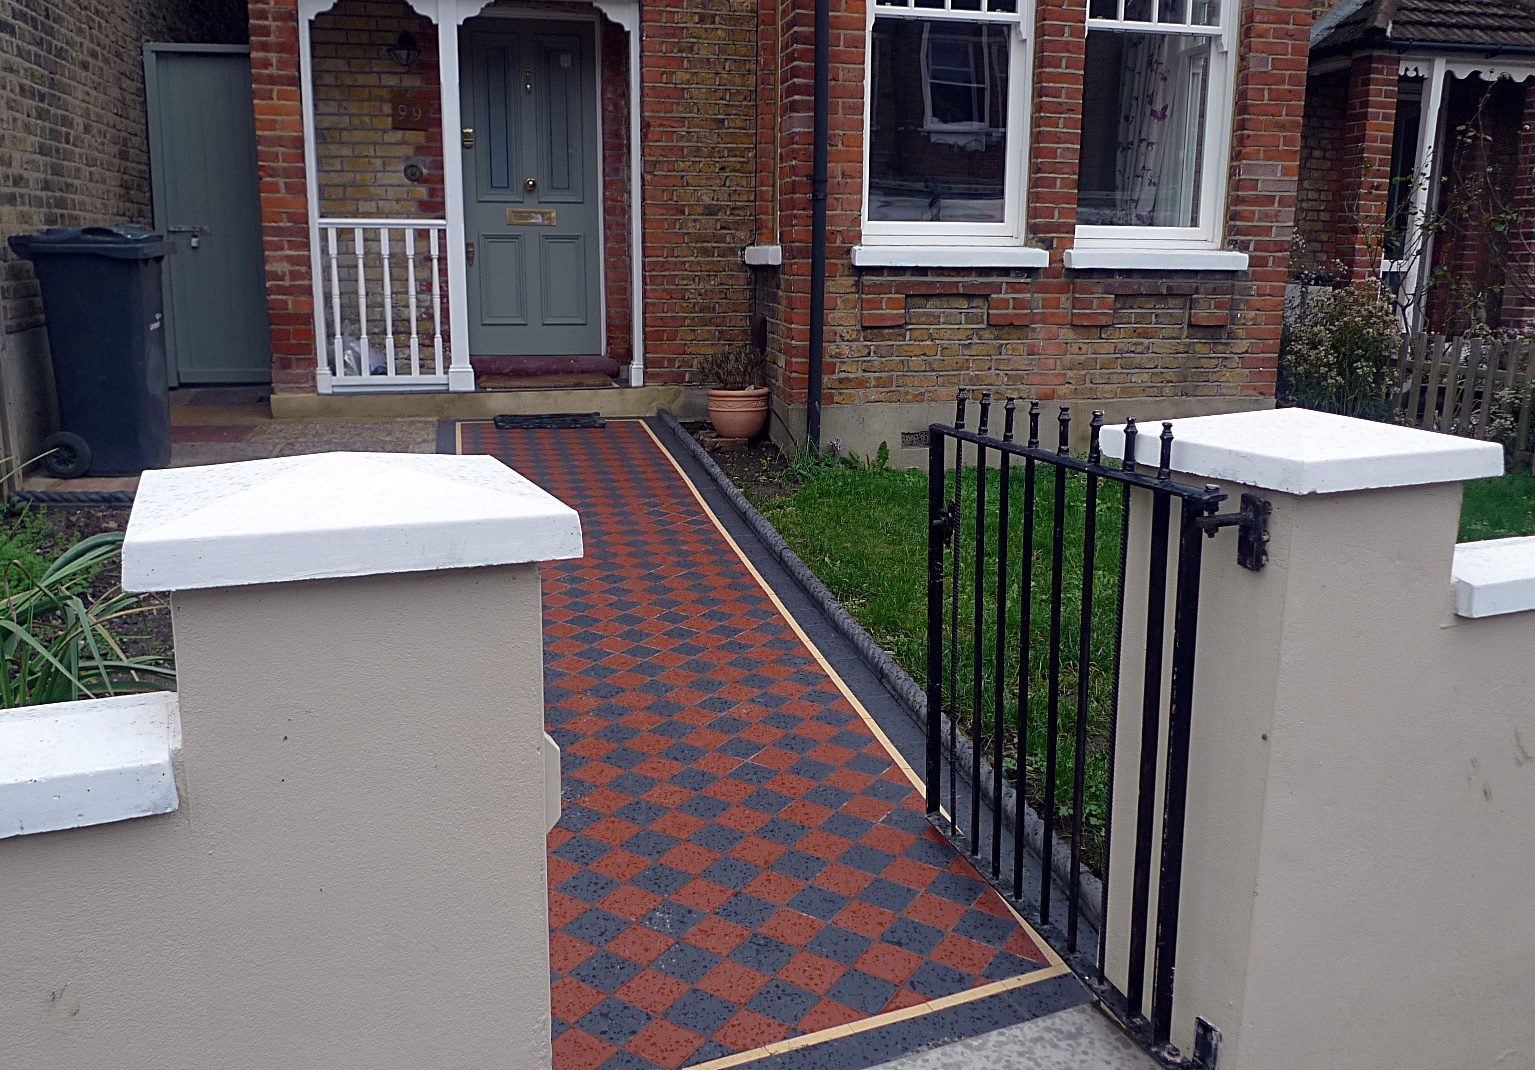 Ornamental stone multi colour mosaic Victorian mosaic metal gate metal rail York stone entrance stone charcoal rope edge tiles render garden wall Streatham Balham West Norwood Clapham London